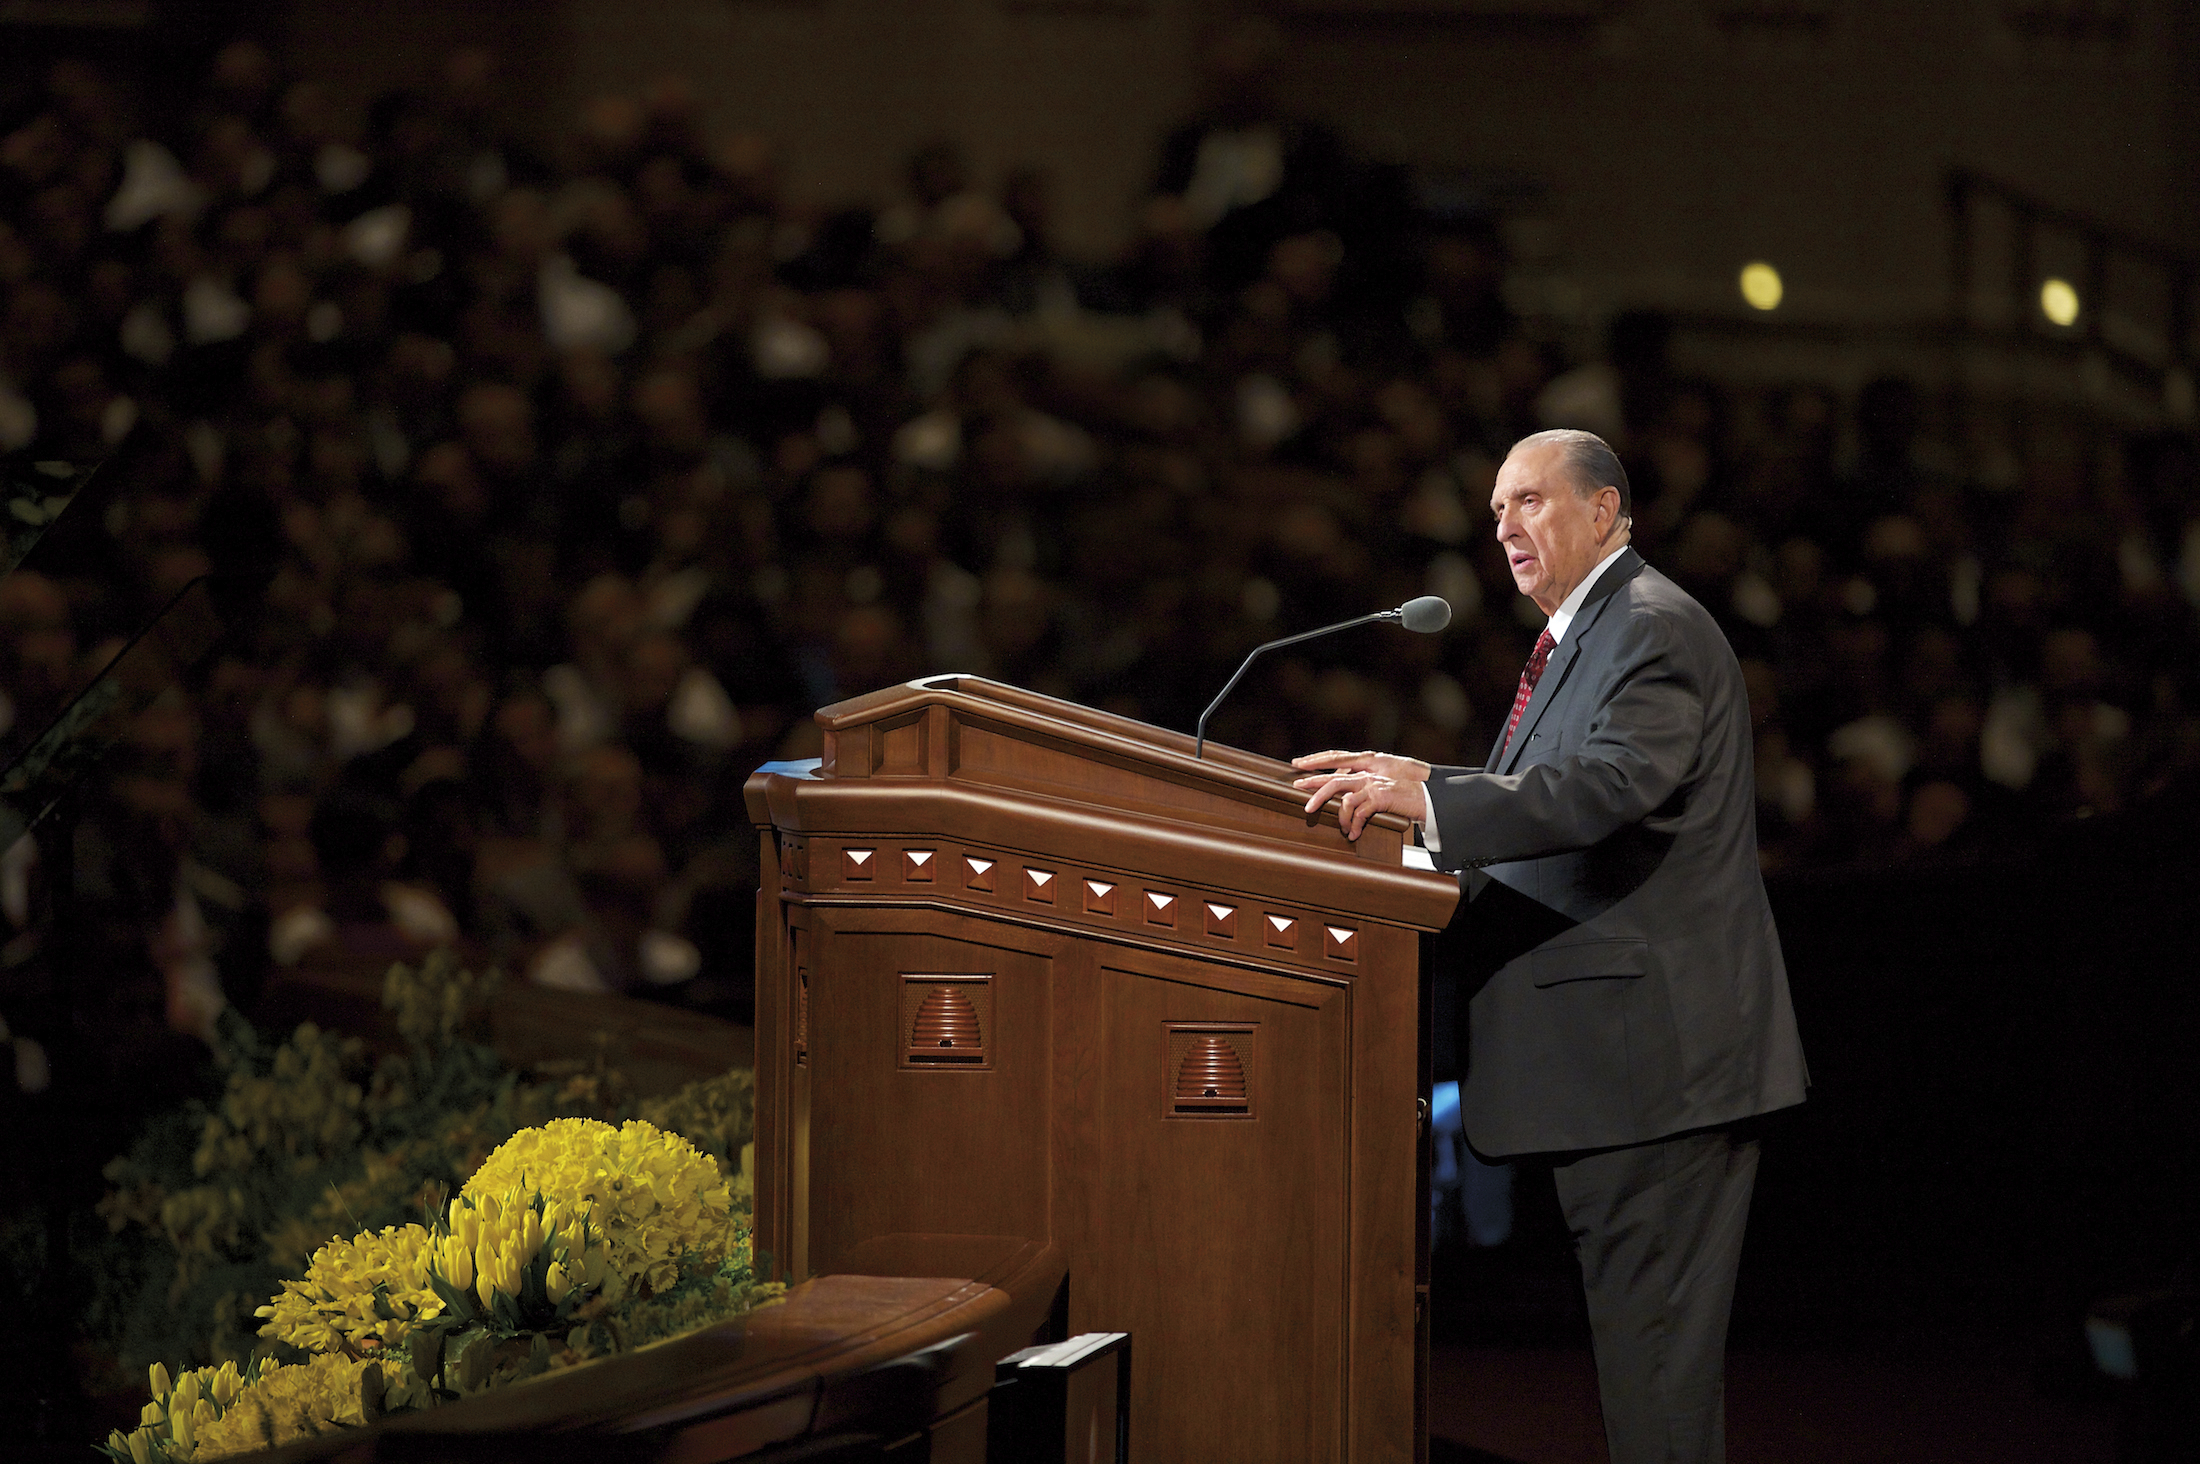 Thomas S. Monson speaking to the congregation during general conference.